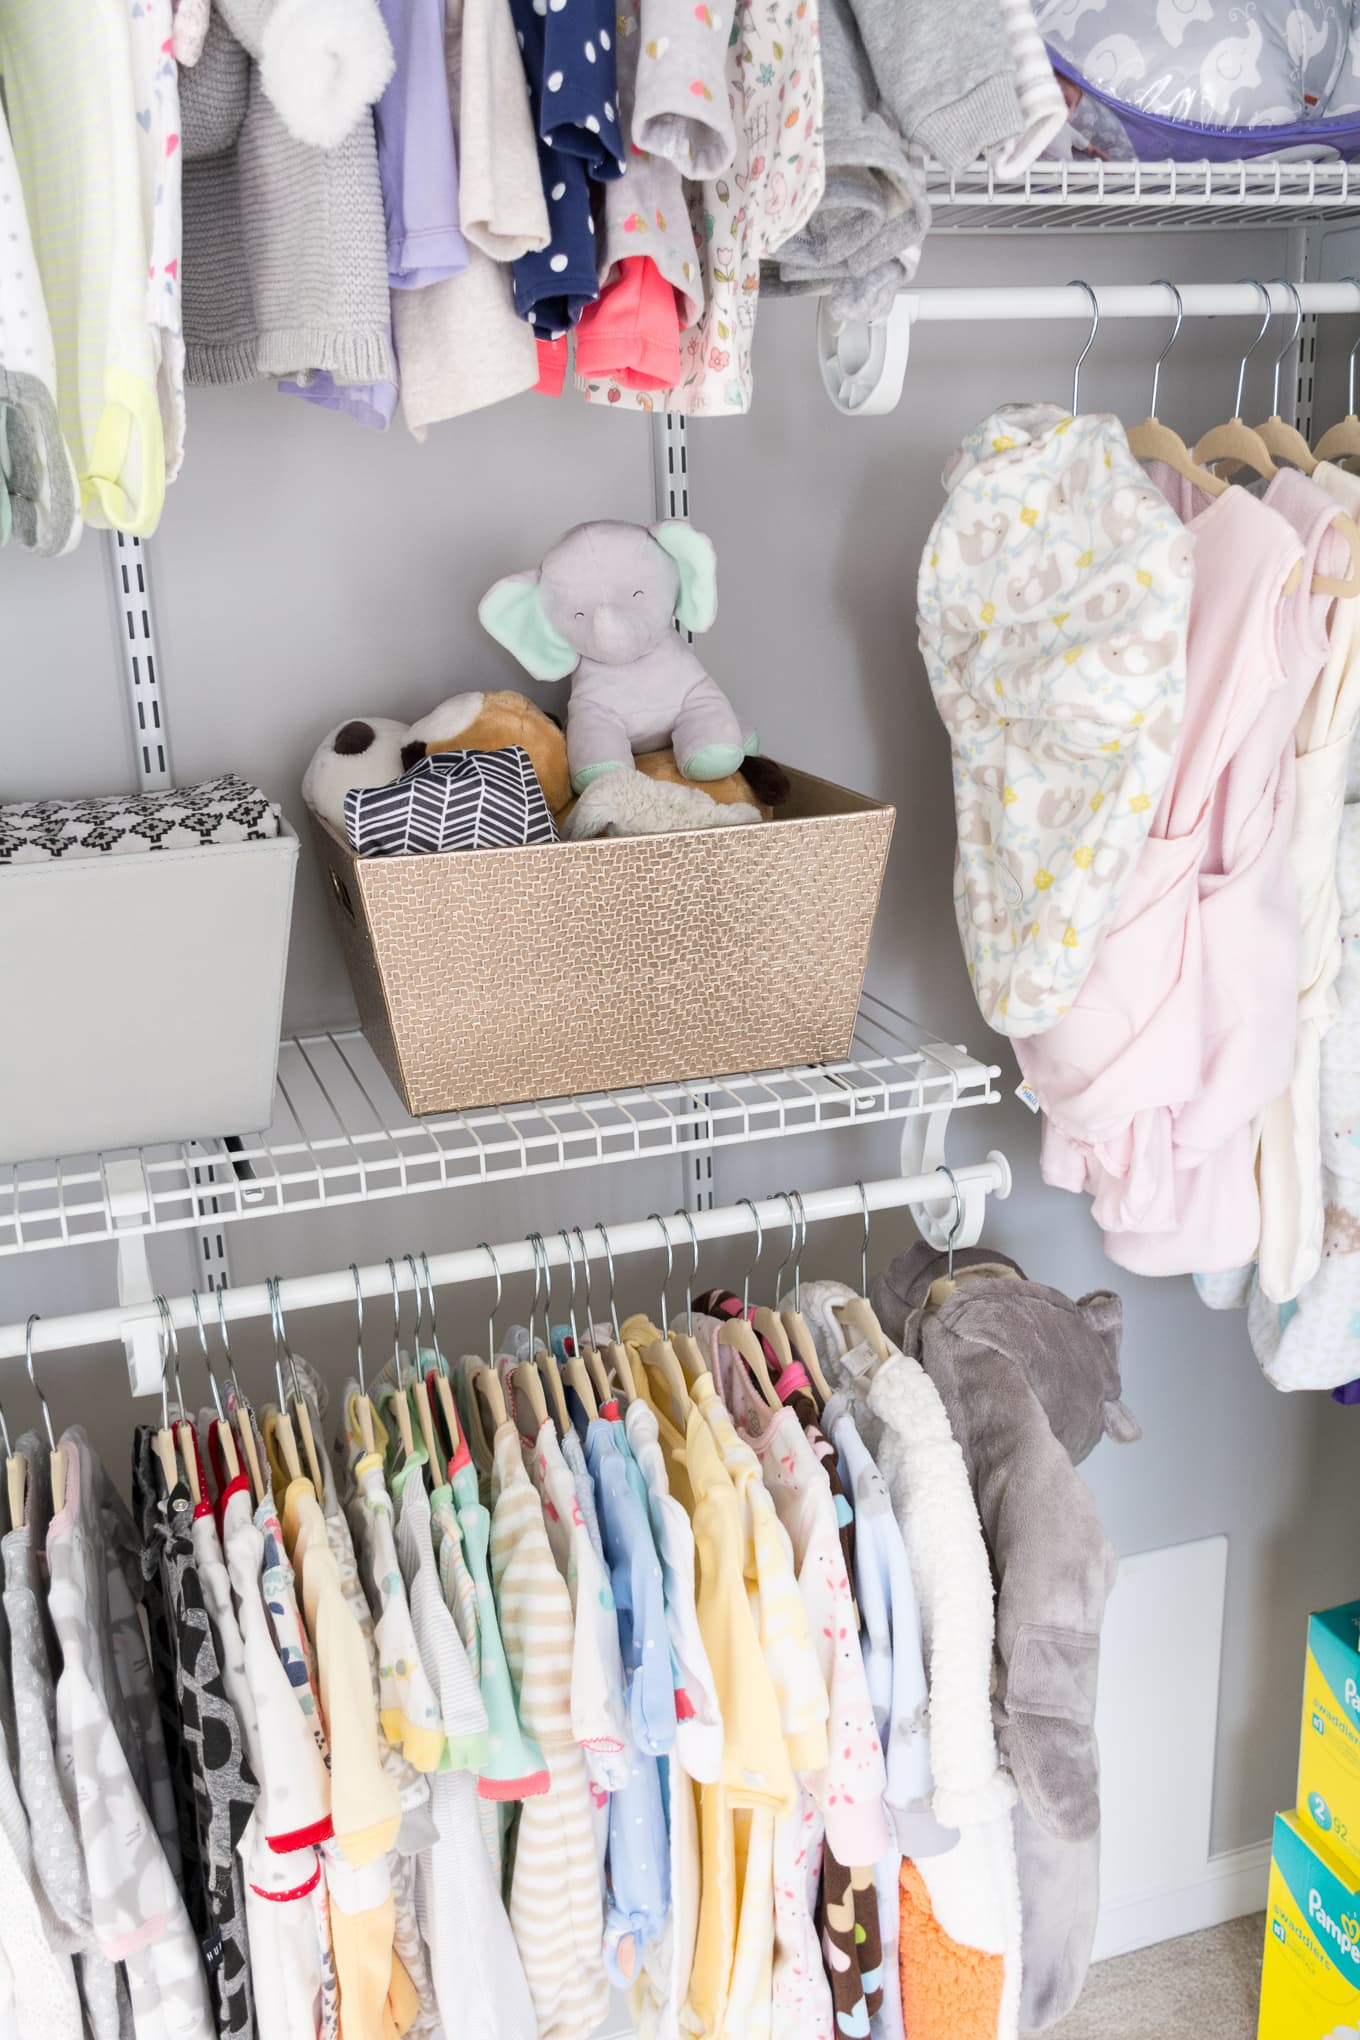 Baby clothes hanging in an organized closet